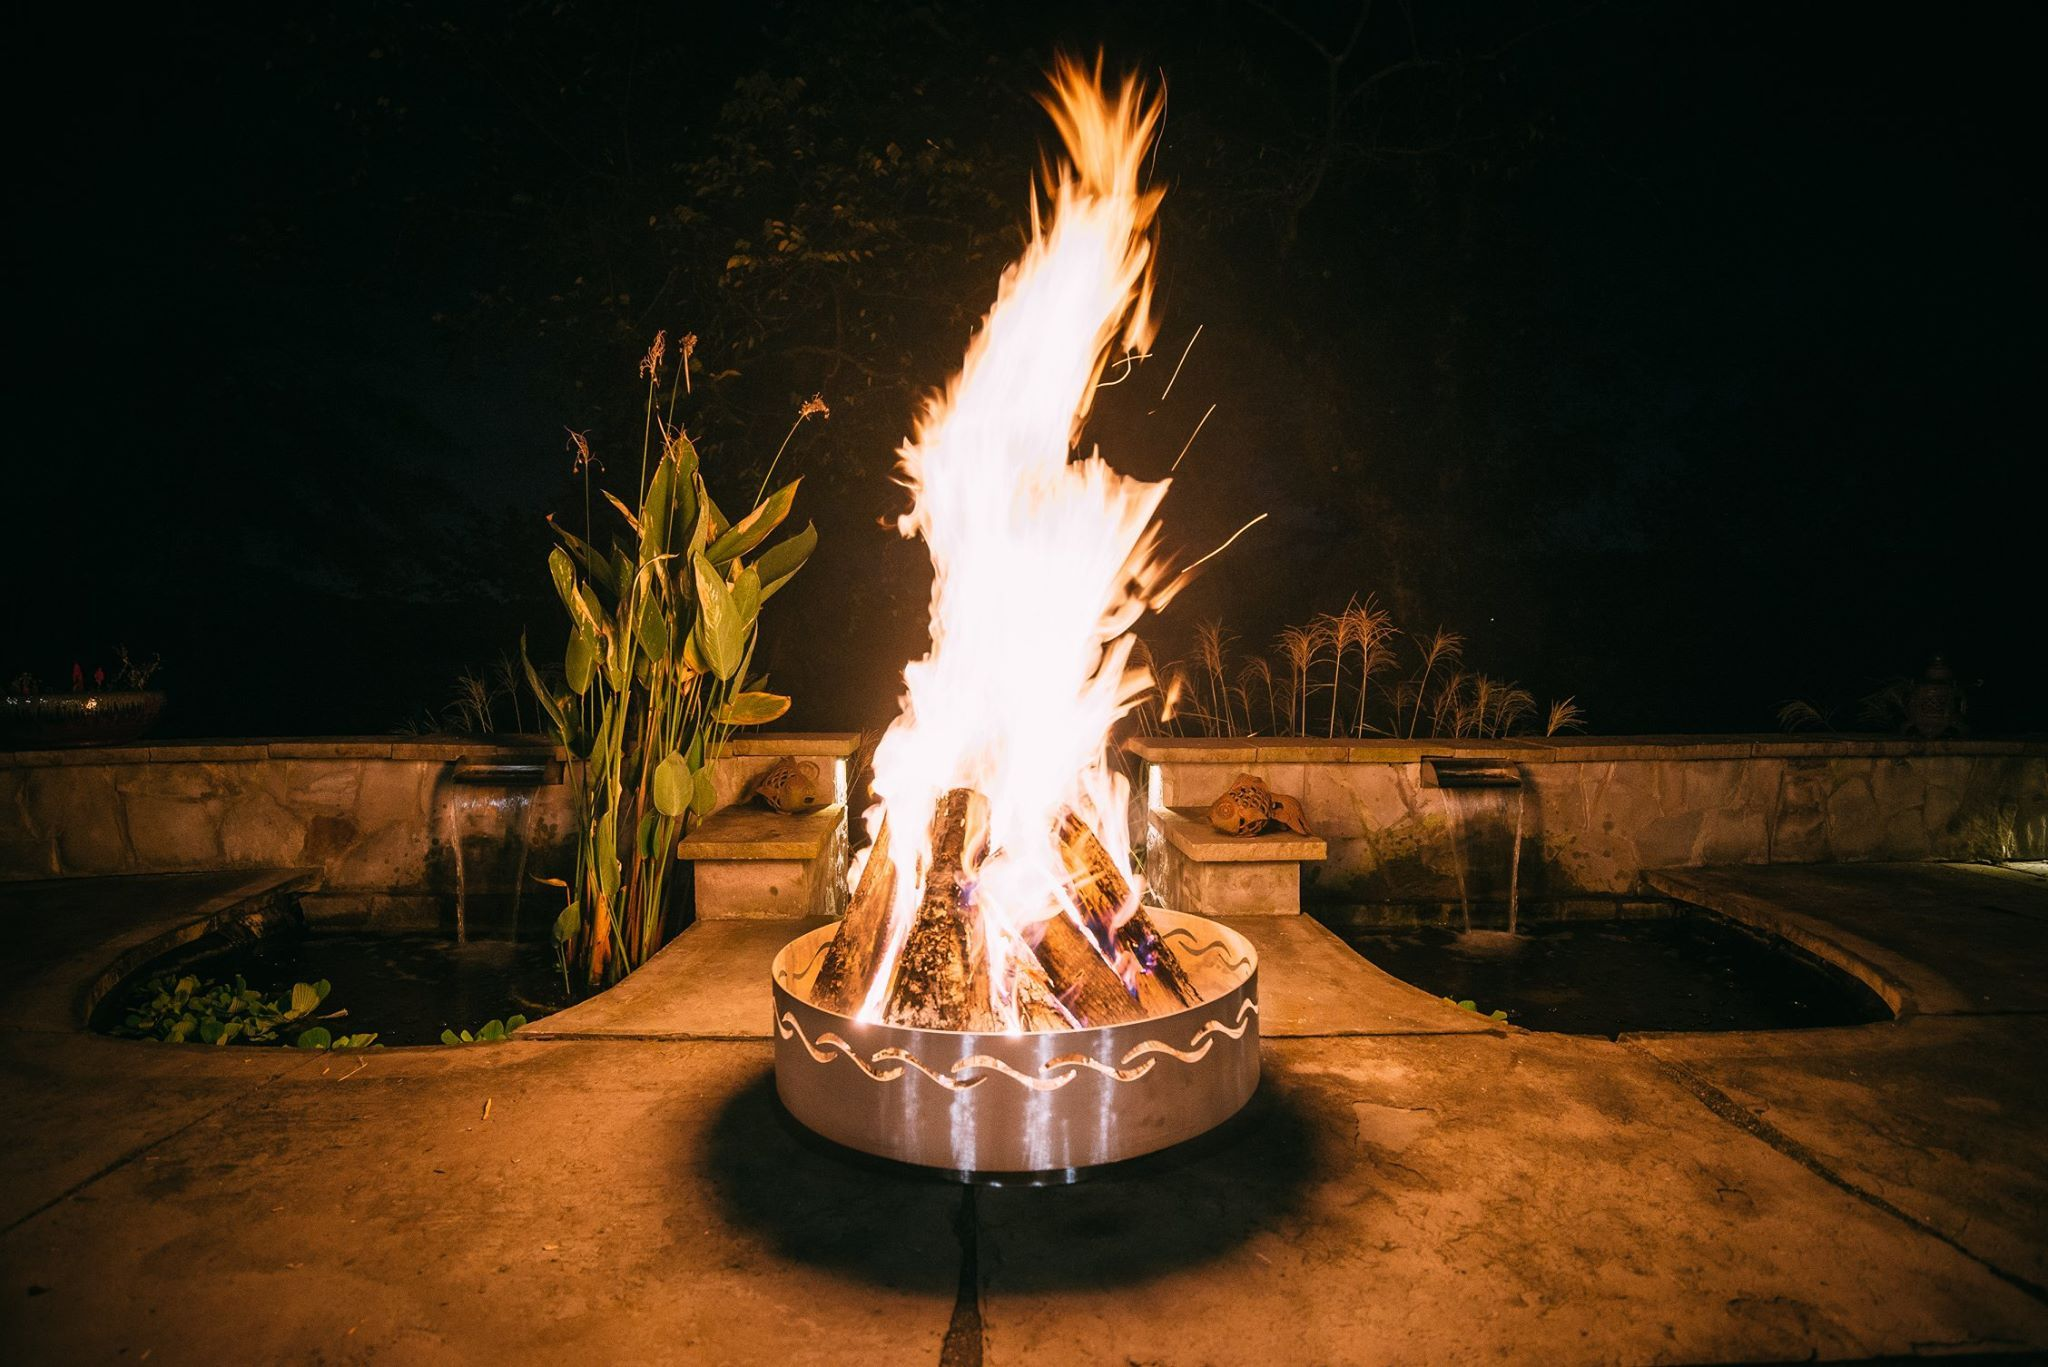 Can I Put A Fire Pit On My Wood Deck Fire Pit Wood Deck Fire Pit Art